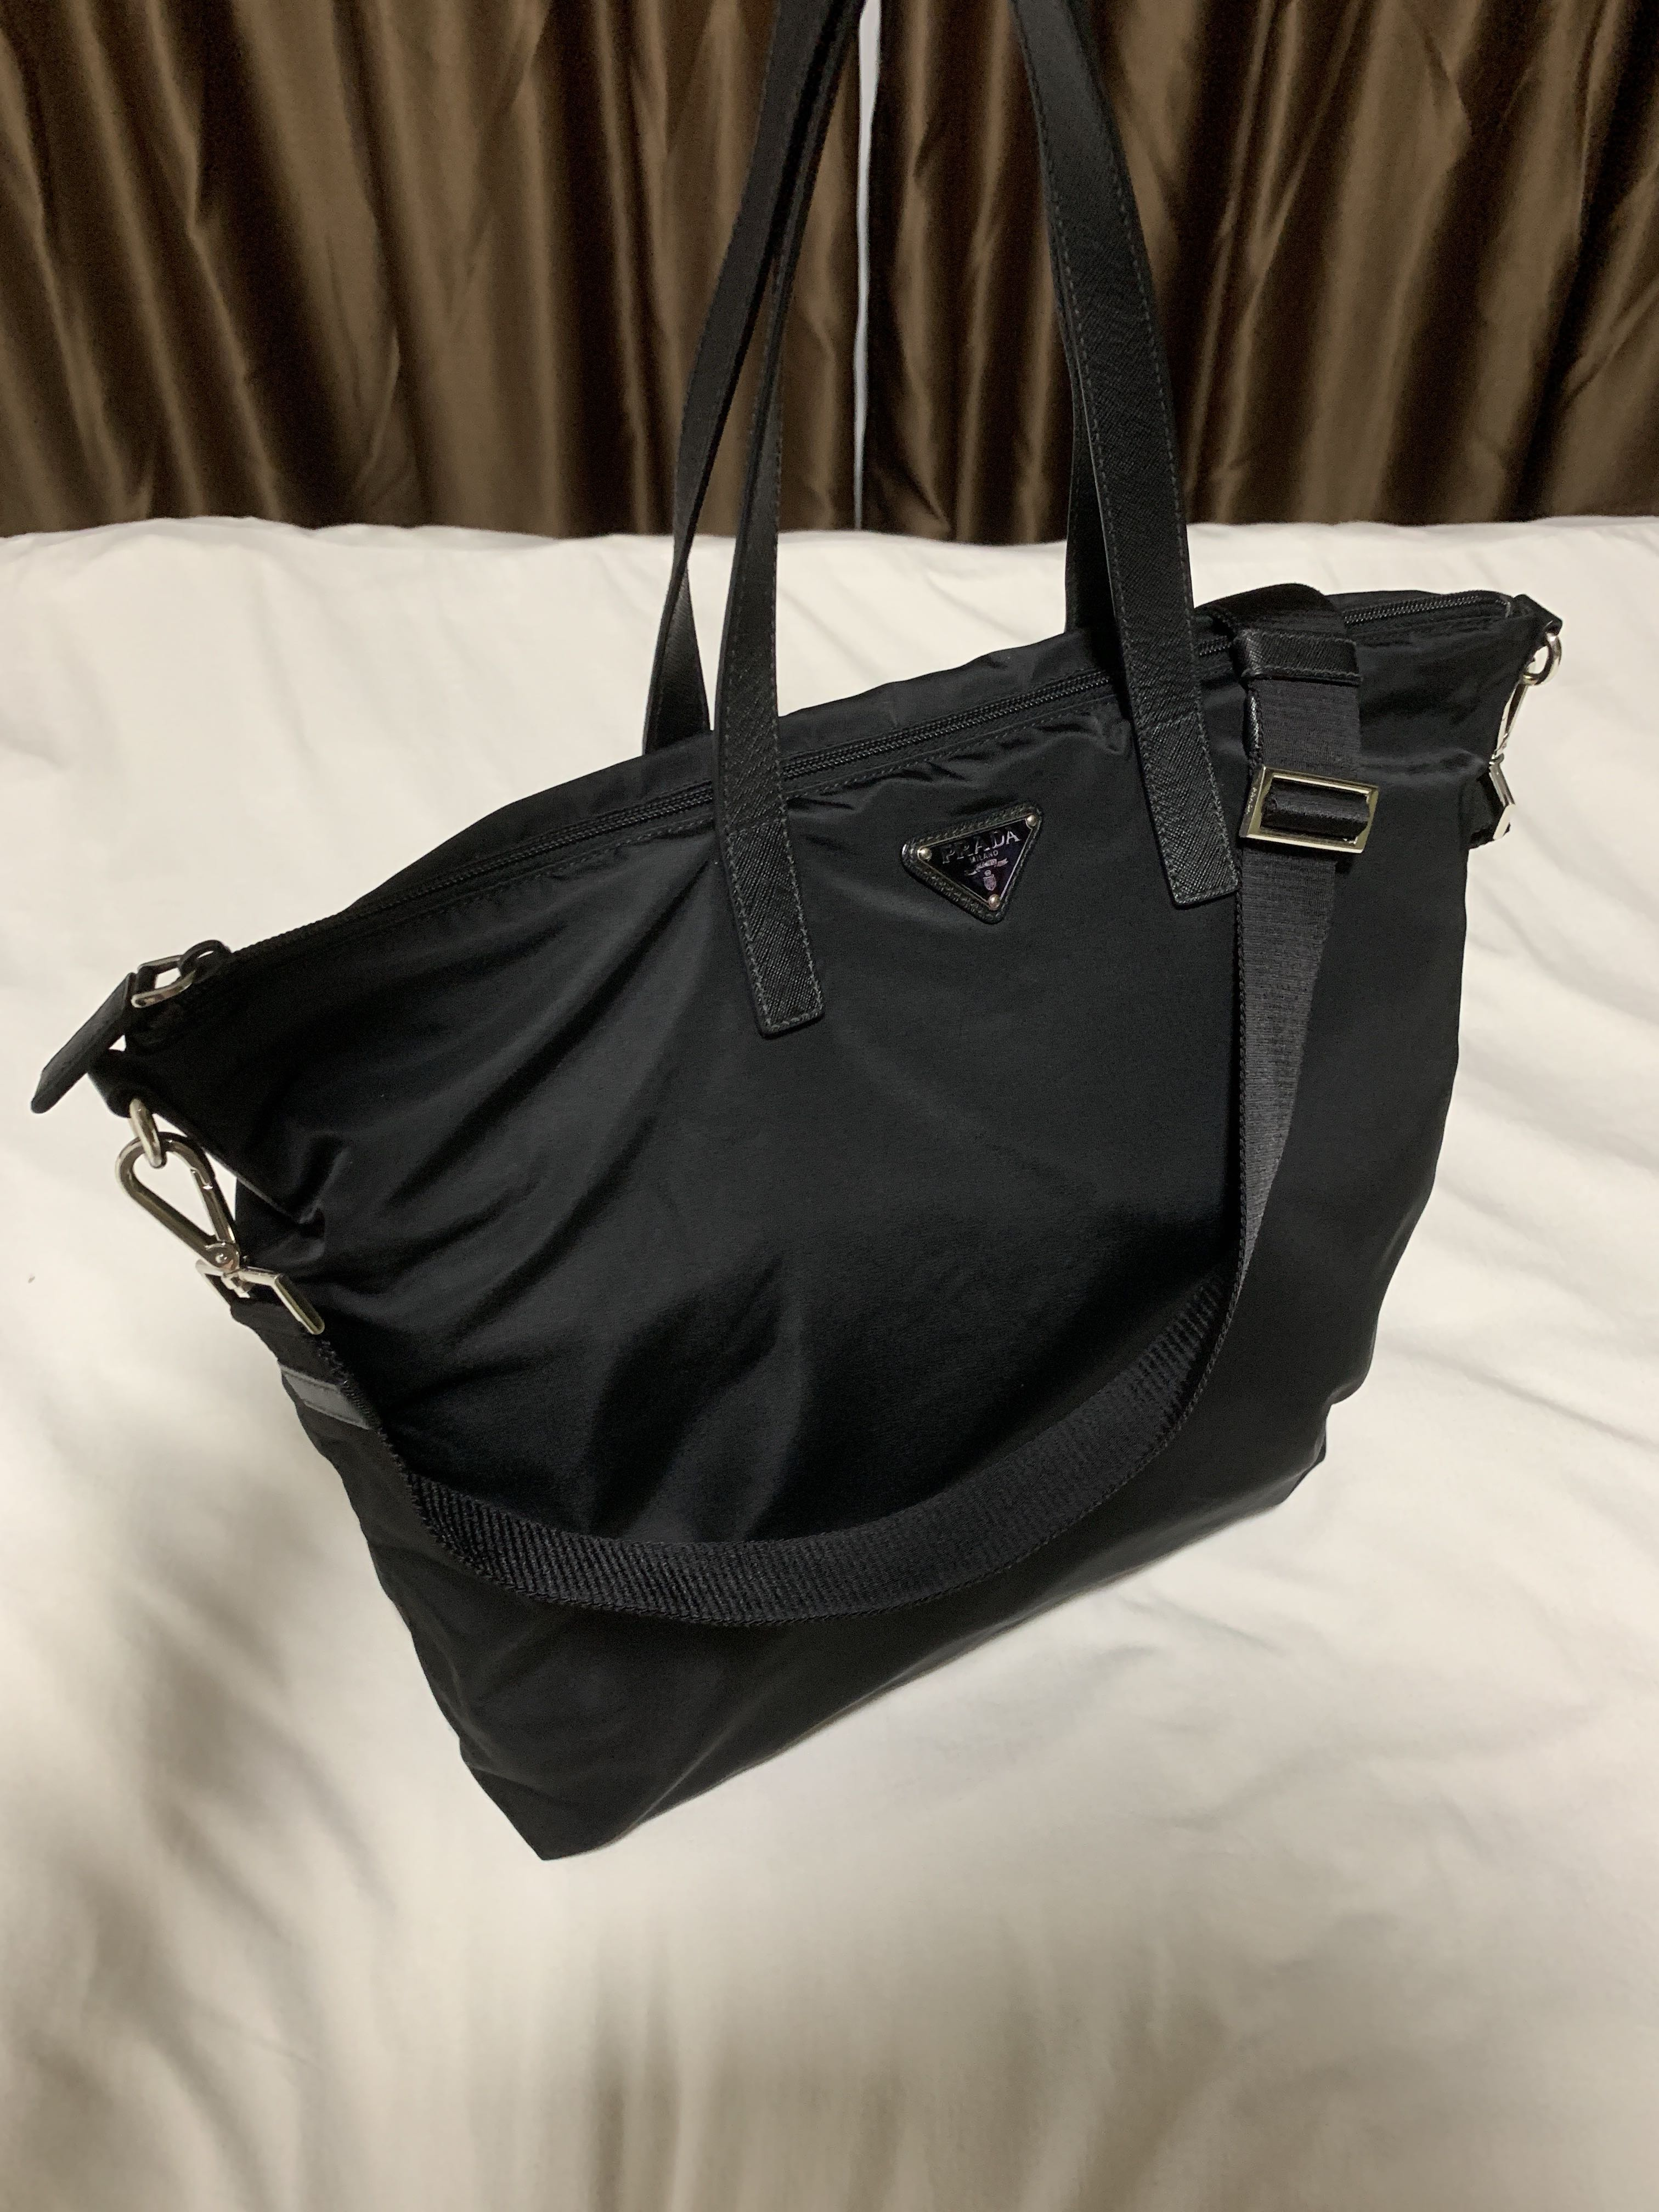 298474f086eb Prada Nylon Tote Bag, Men's Fashion, Bags & Wallets, Sling Bags on Carousell